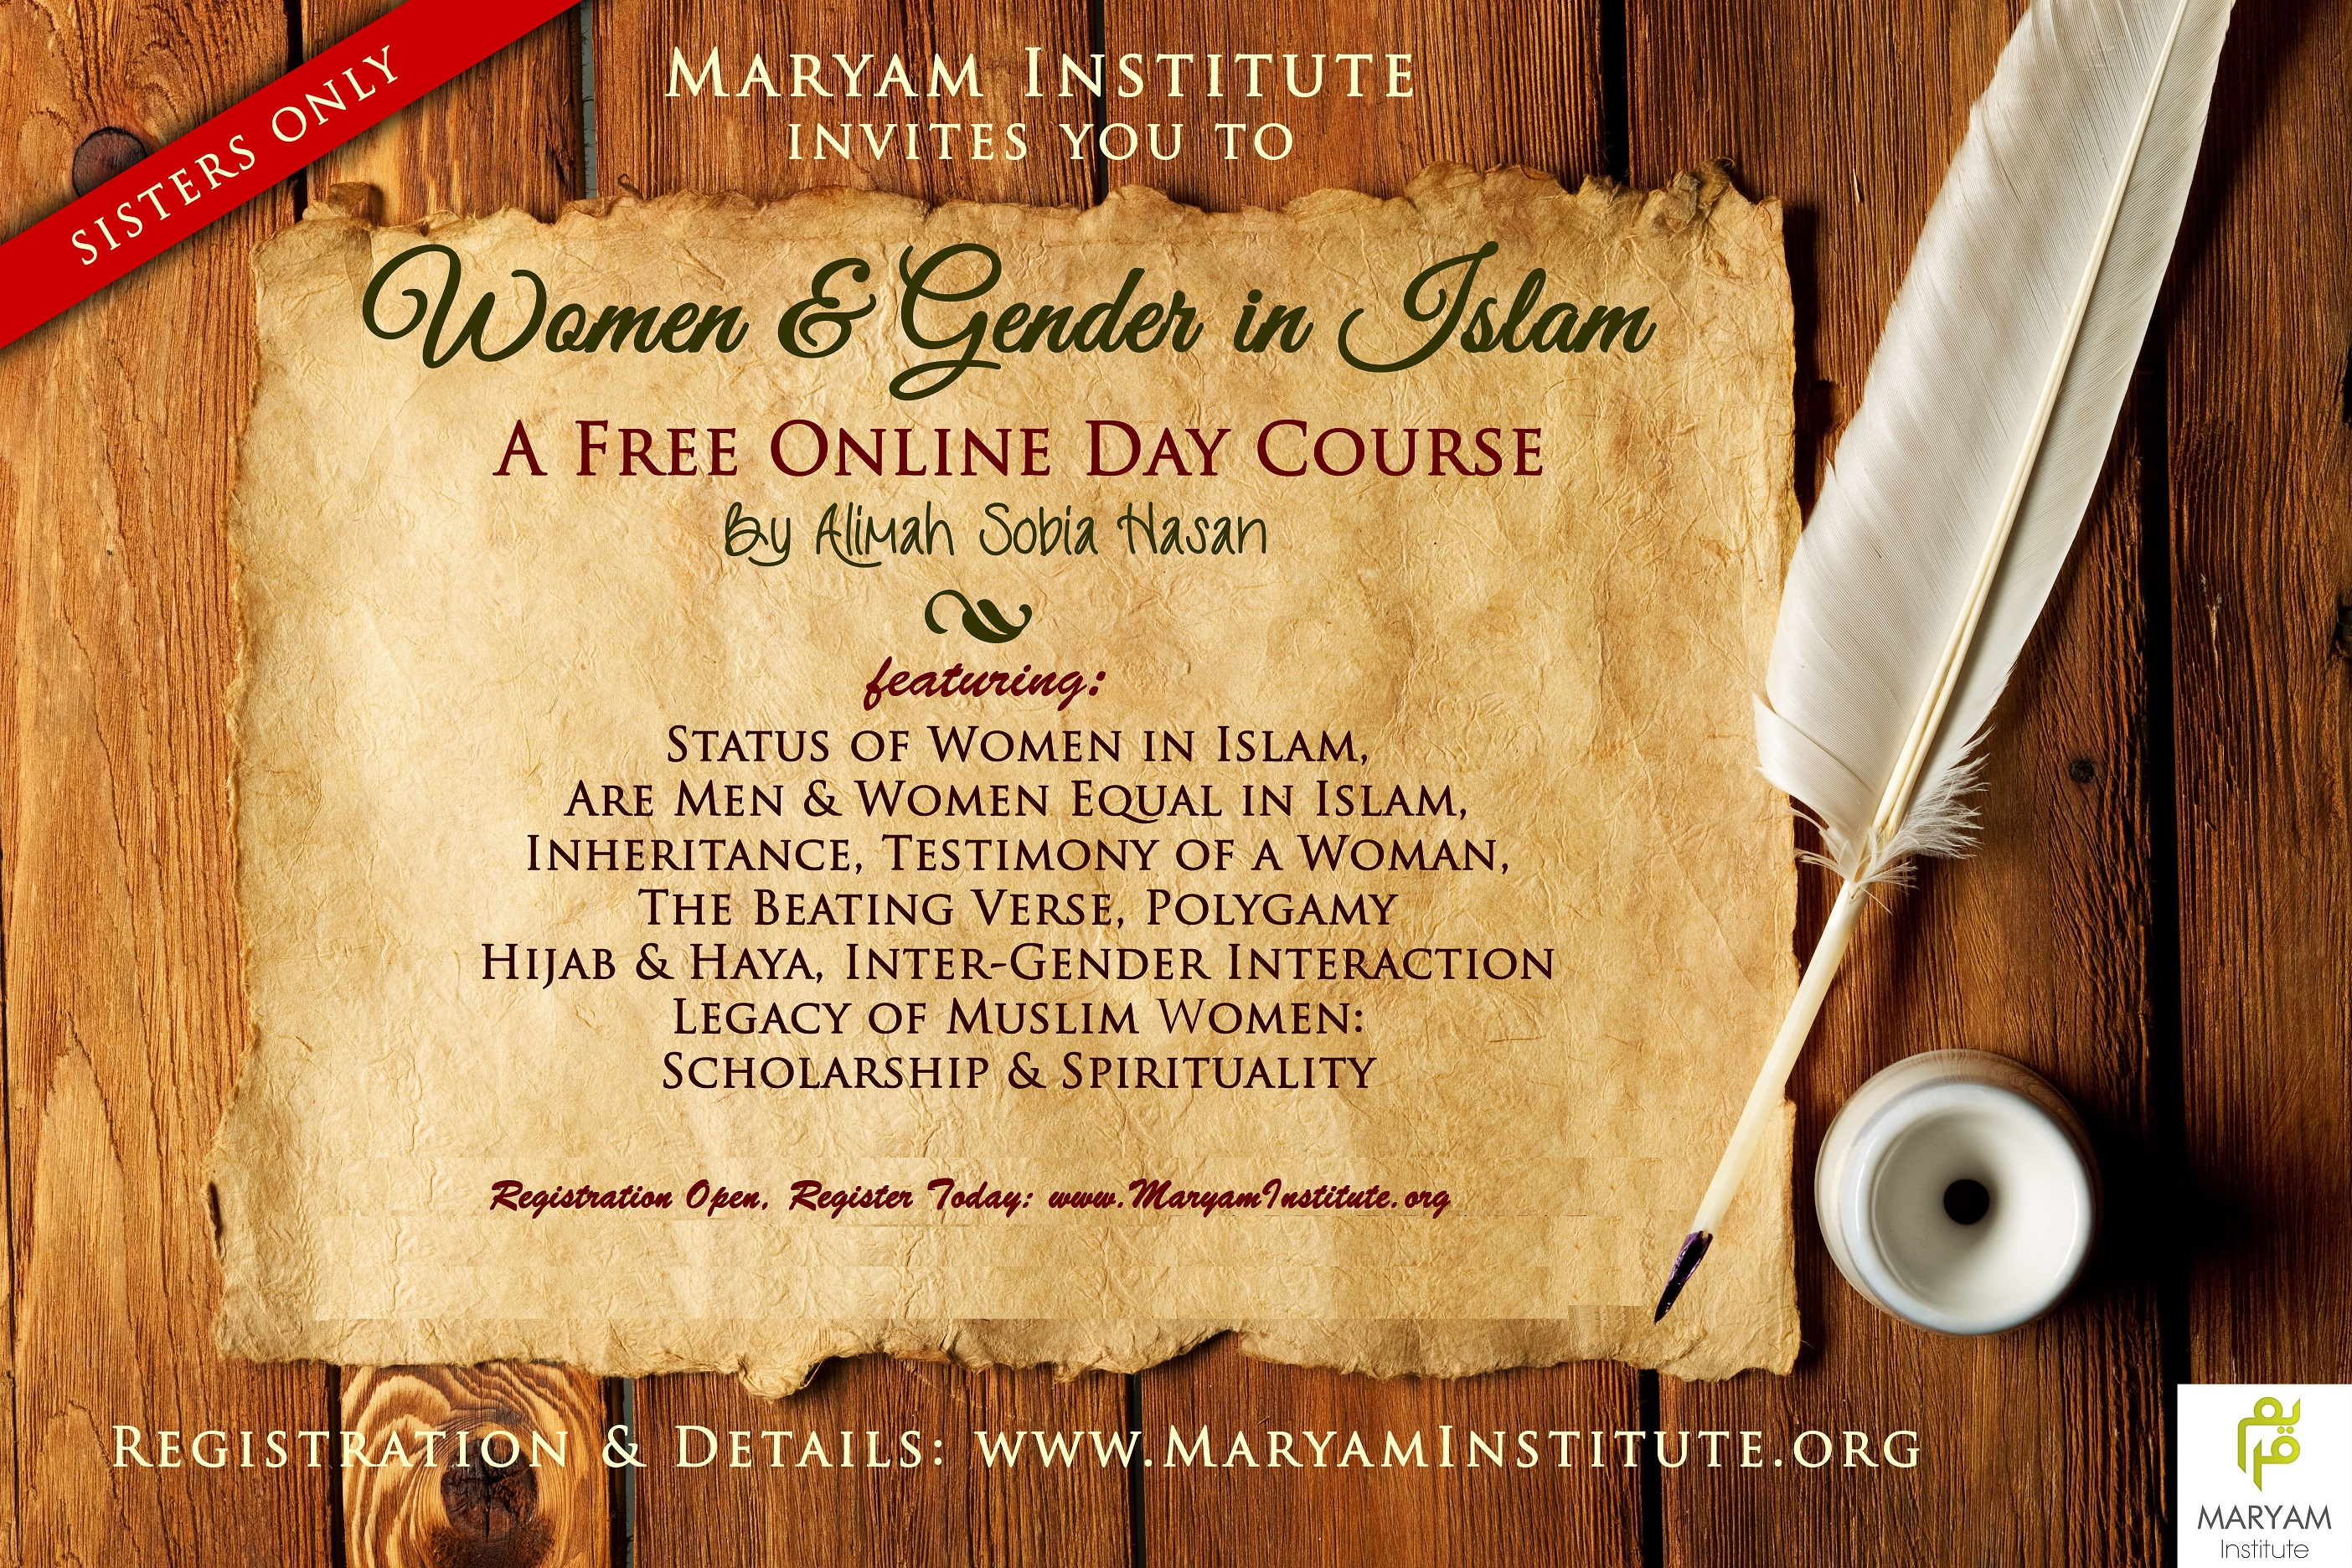 women and gender in islam Read and download pdf ebook women and gender in islam historical roots of a modern debate leila ahmed at online ebook library get women and gender in islam historical roots of a modern debate leila ahmed pdf file for free from our online library.